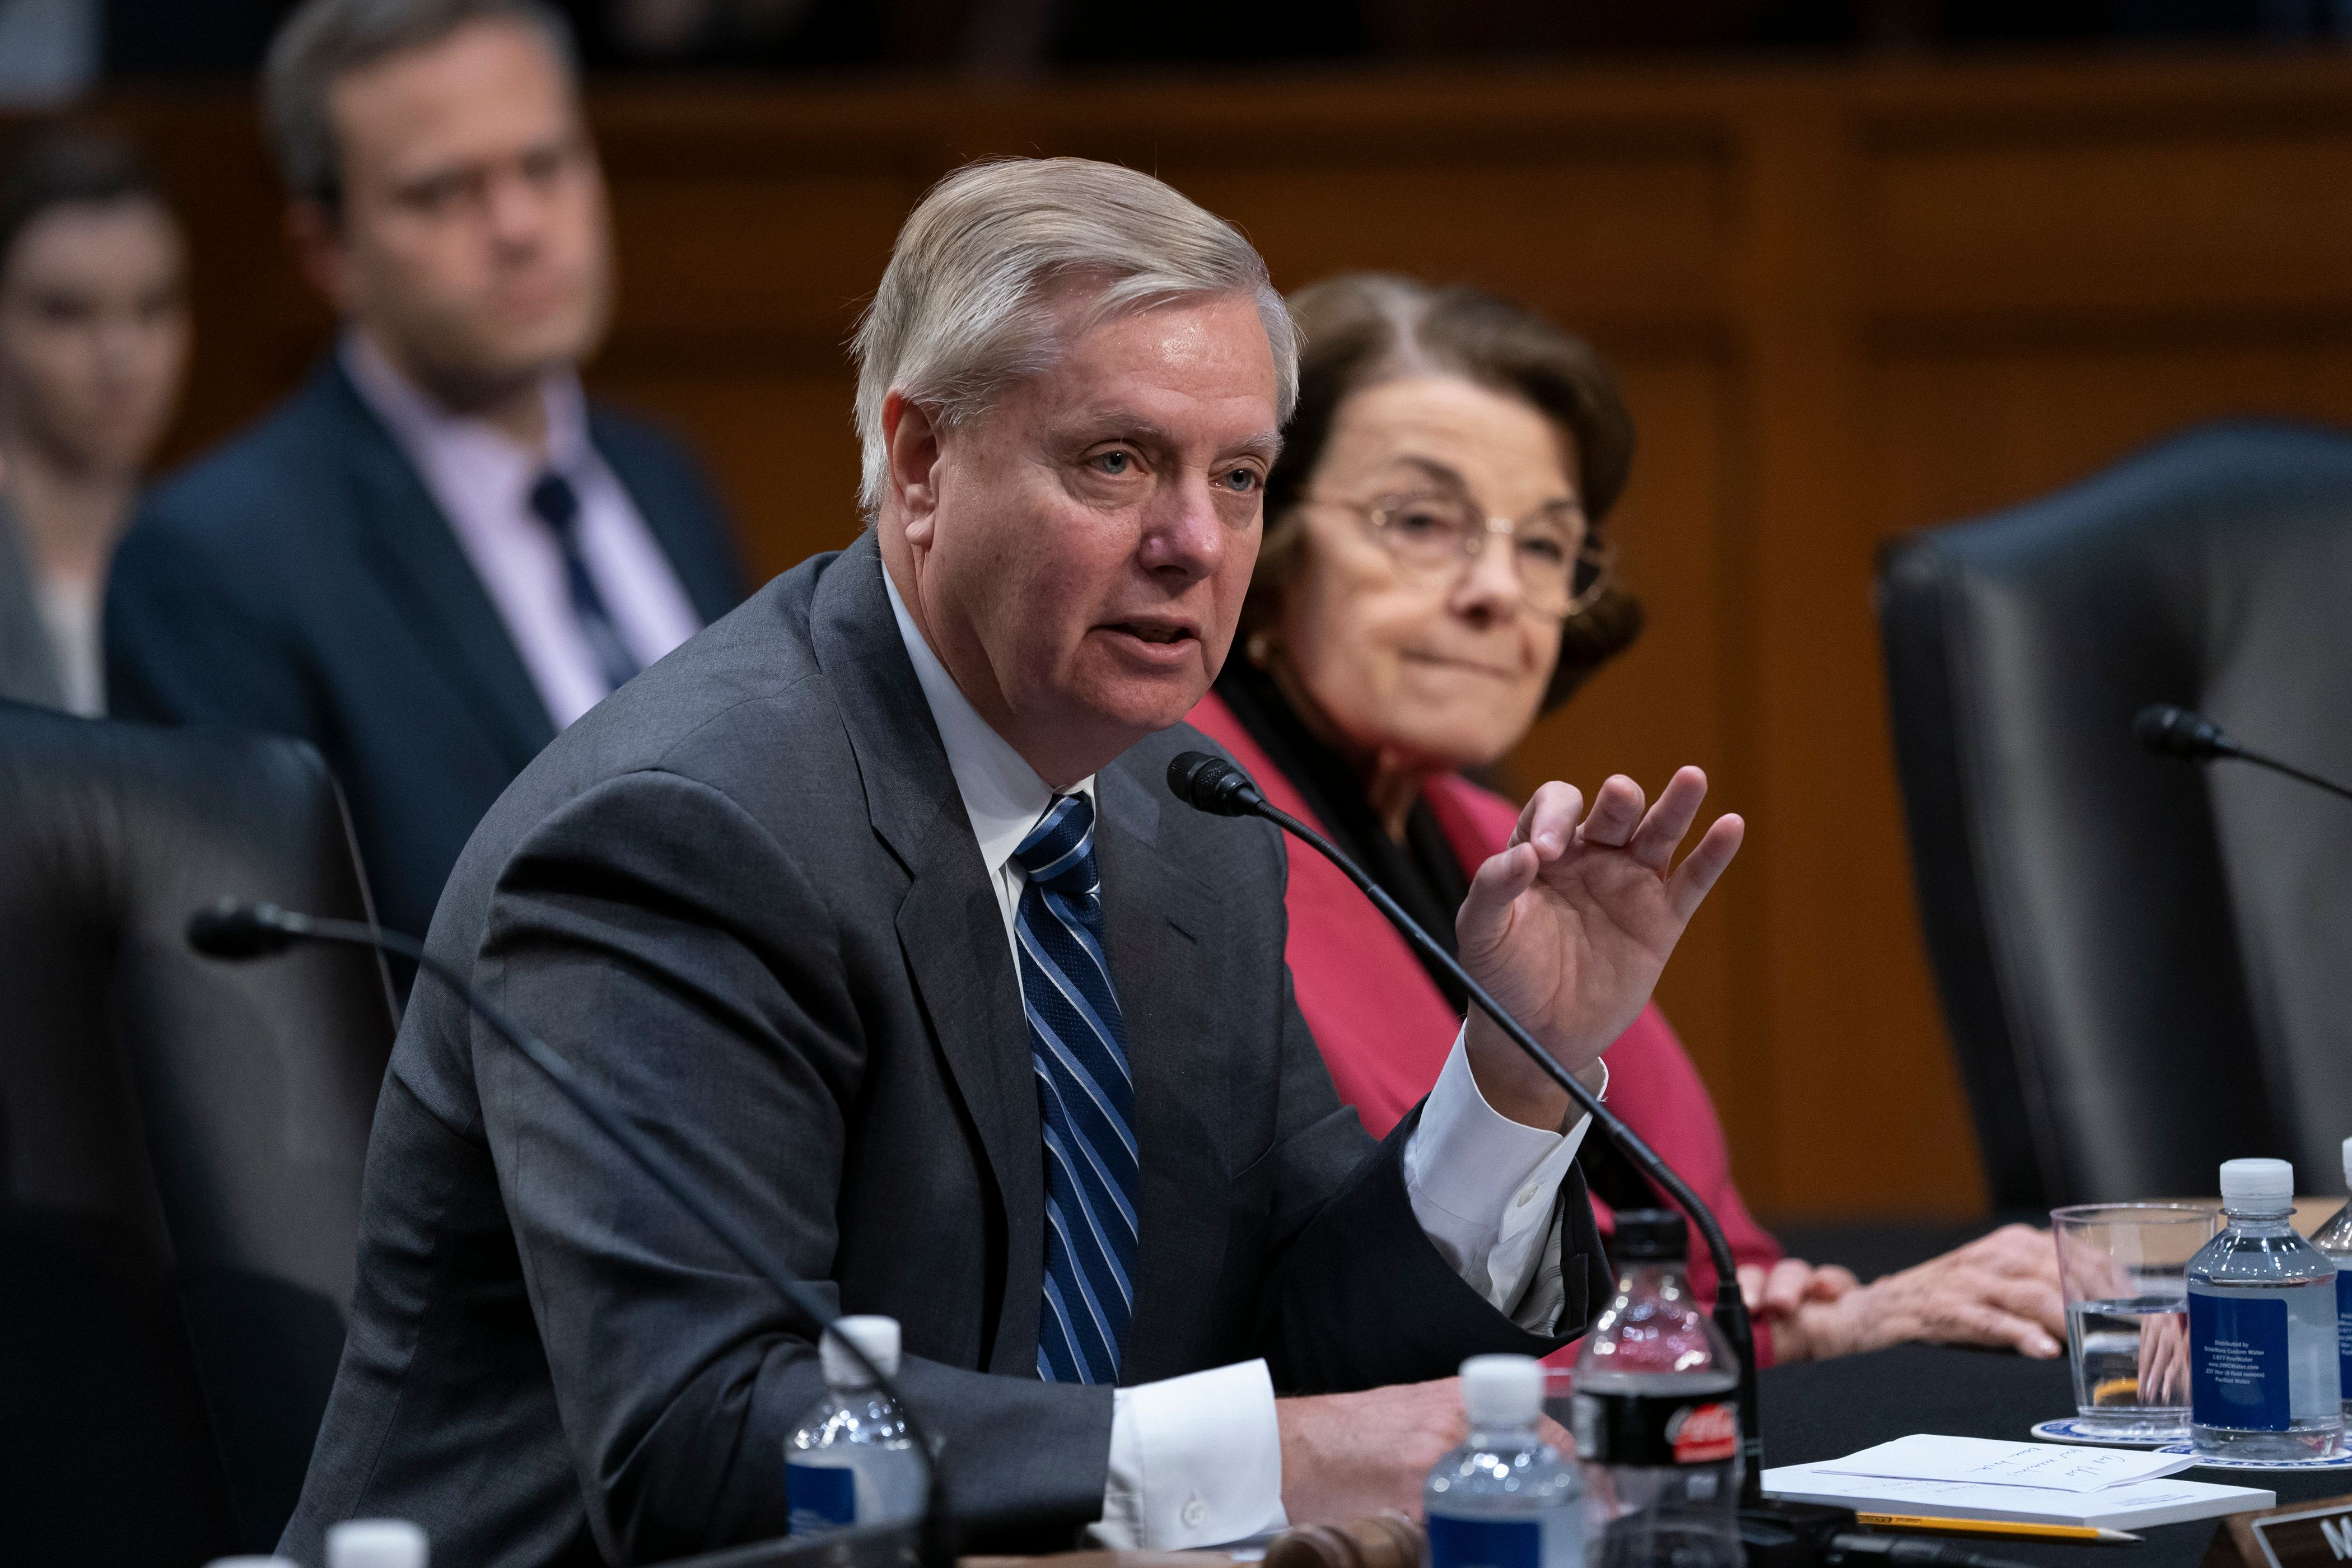 Senate Judiciary Committee Chairman Lindsey Graham, R-S.C., joined at right by Sen. Dianne Feinstein, D-Calif., the ranking member, speaks on the nomination of Bill Barr to be attorney general, on Capitol Hill in Washington, Thursday, Feb. 7, 2019. Barr's nomination now goes to the whole Senate for consideration. (AP Photo/J. Scott Applewhite)